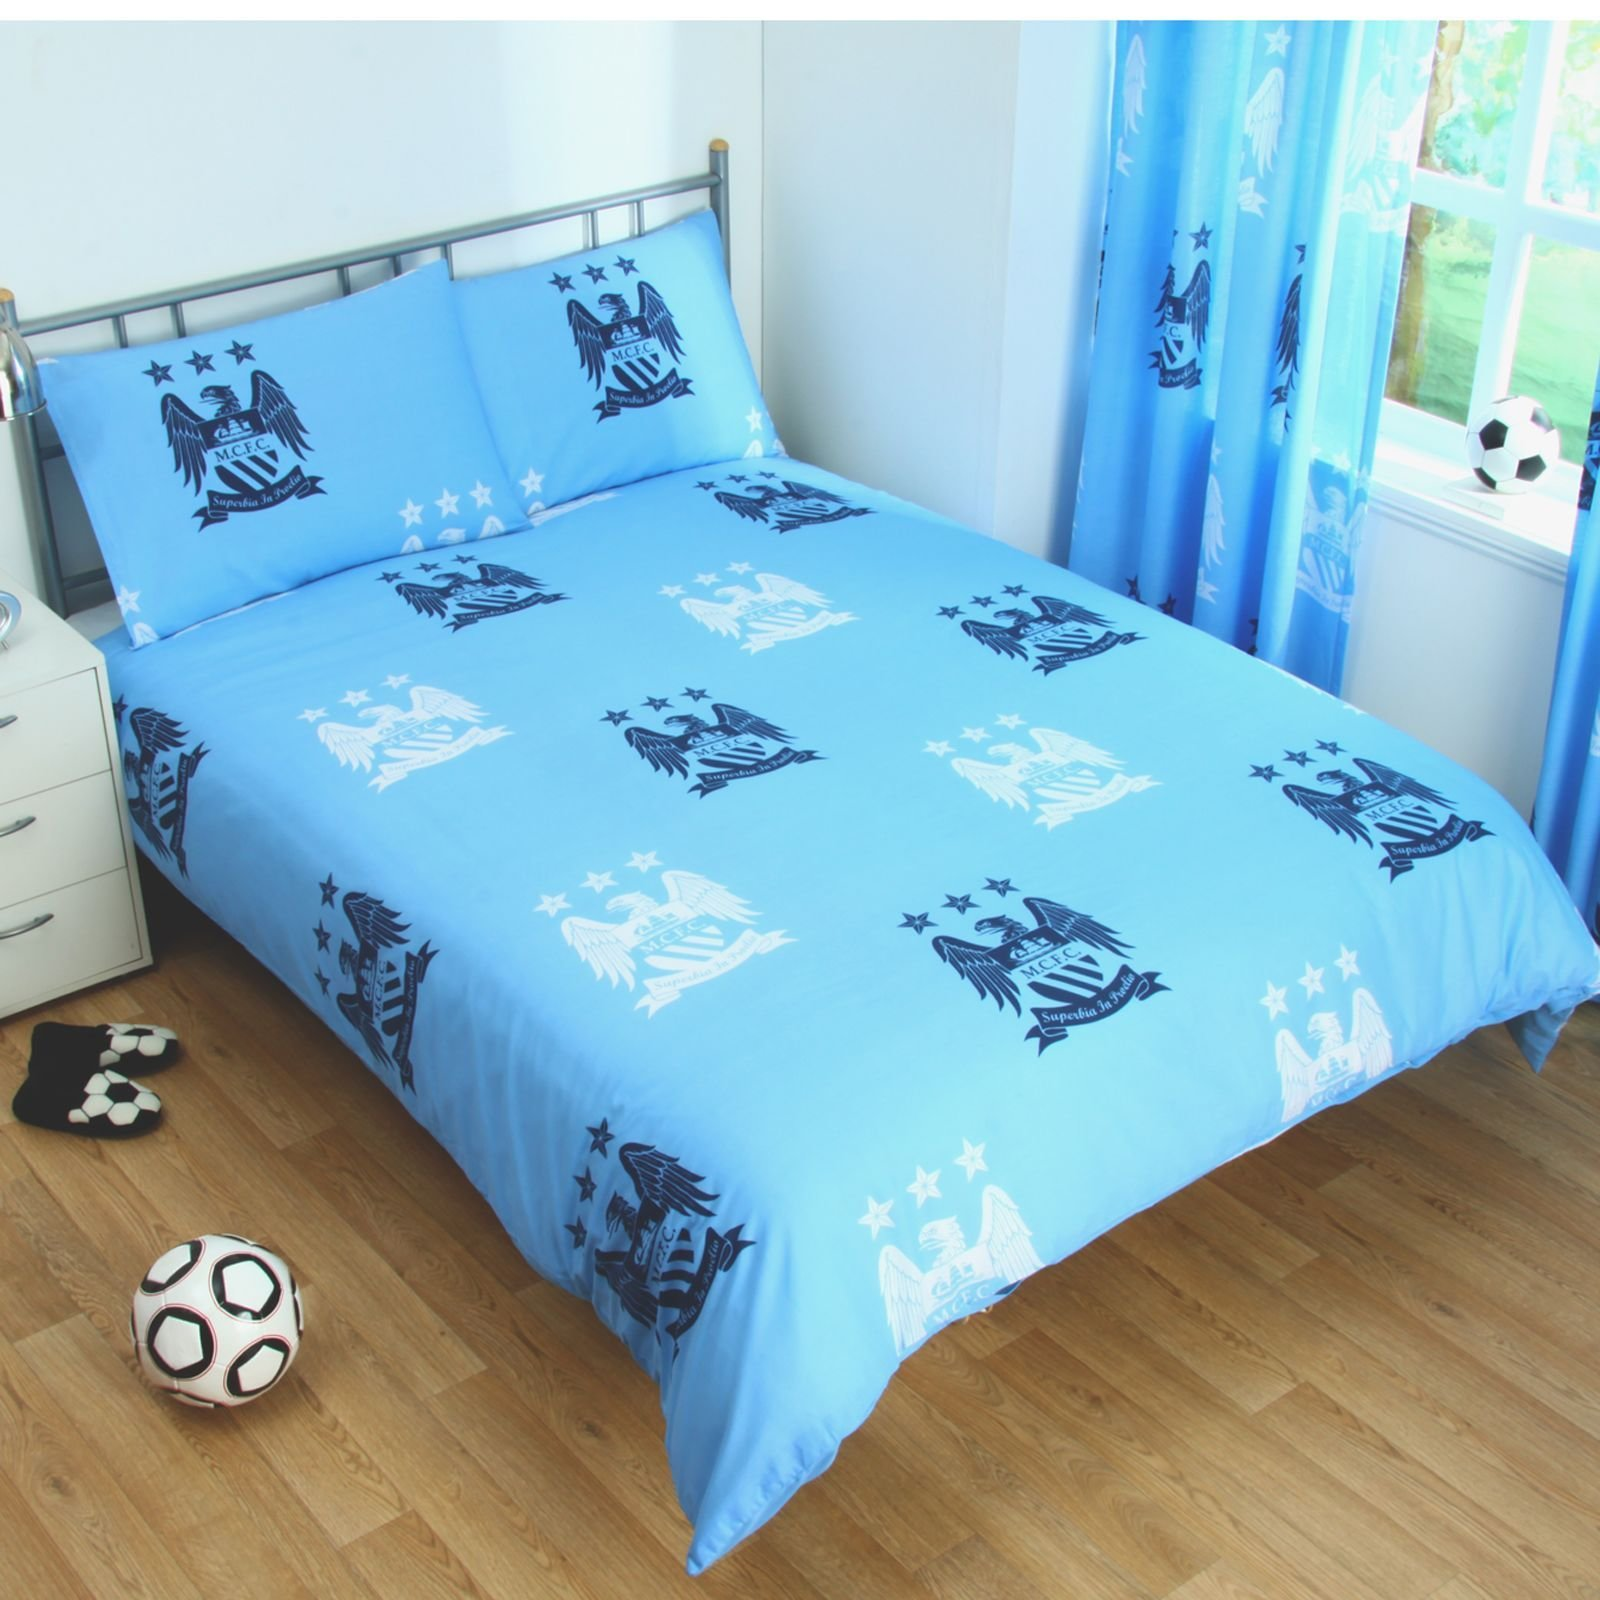 Best Manchester City Duvet Cover Sets Crest Blue Football With Pictures